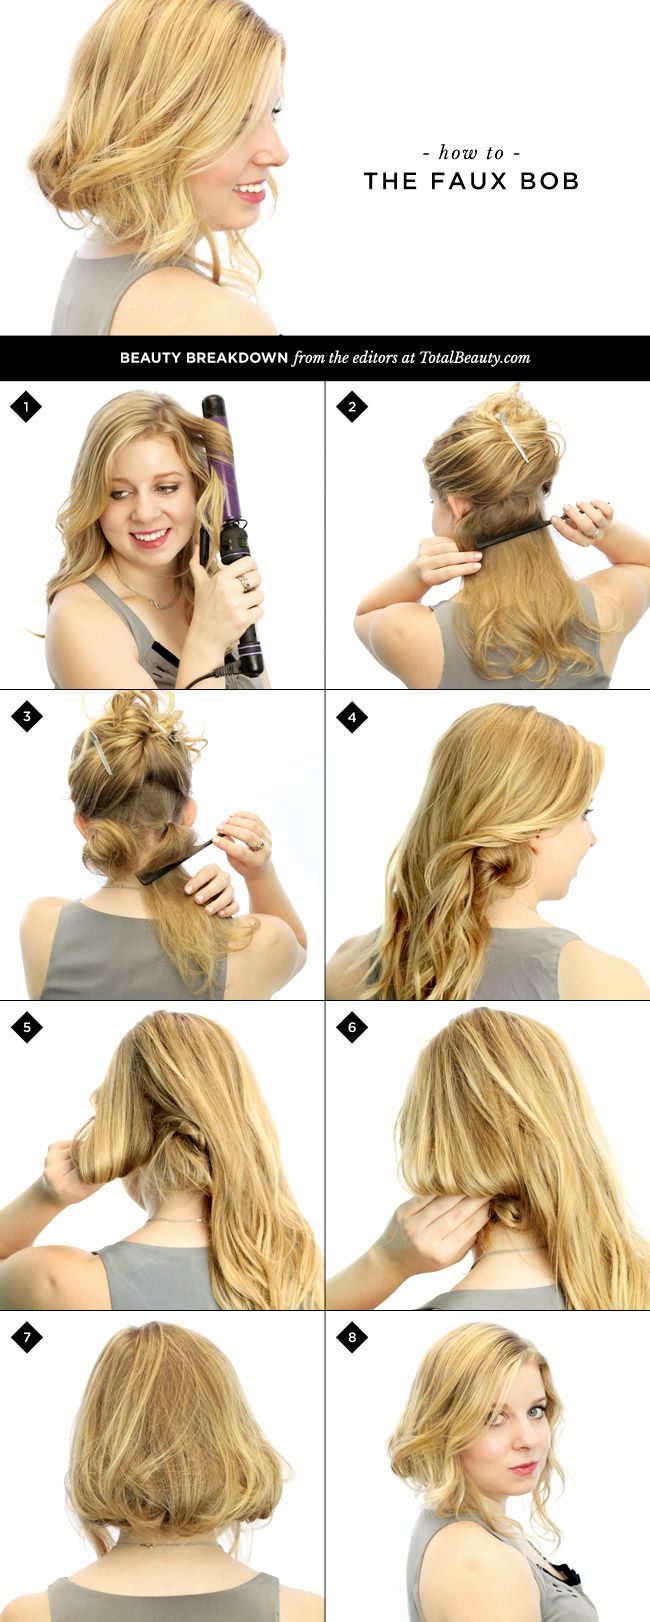 How to Make Long Hair Short: Faux Bob Hair Tutorials - Pretty Designs